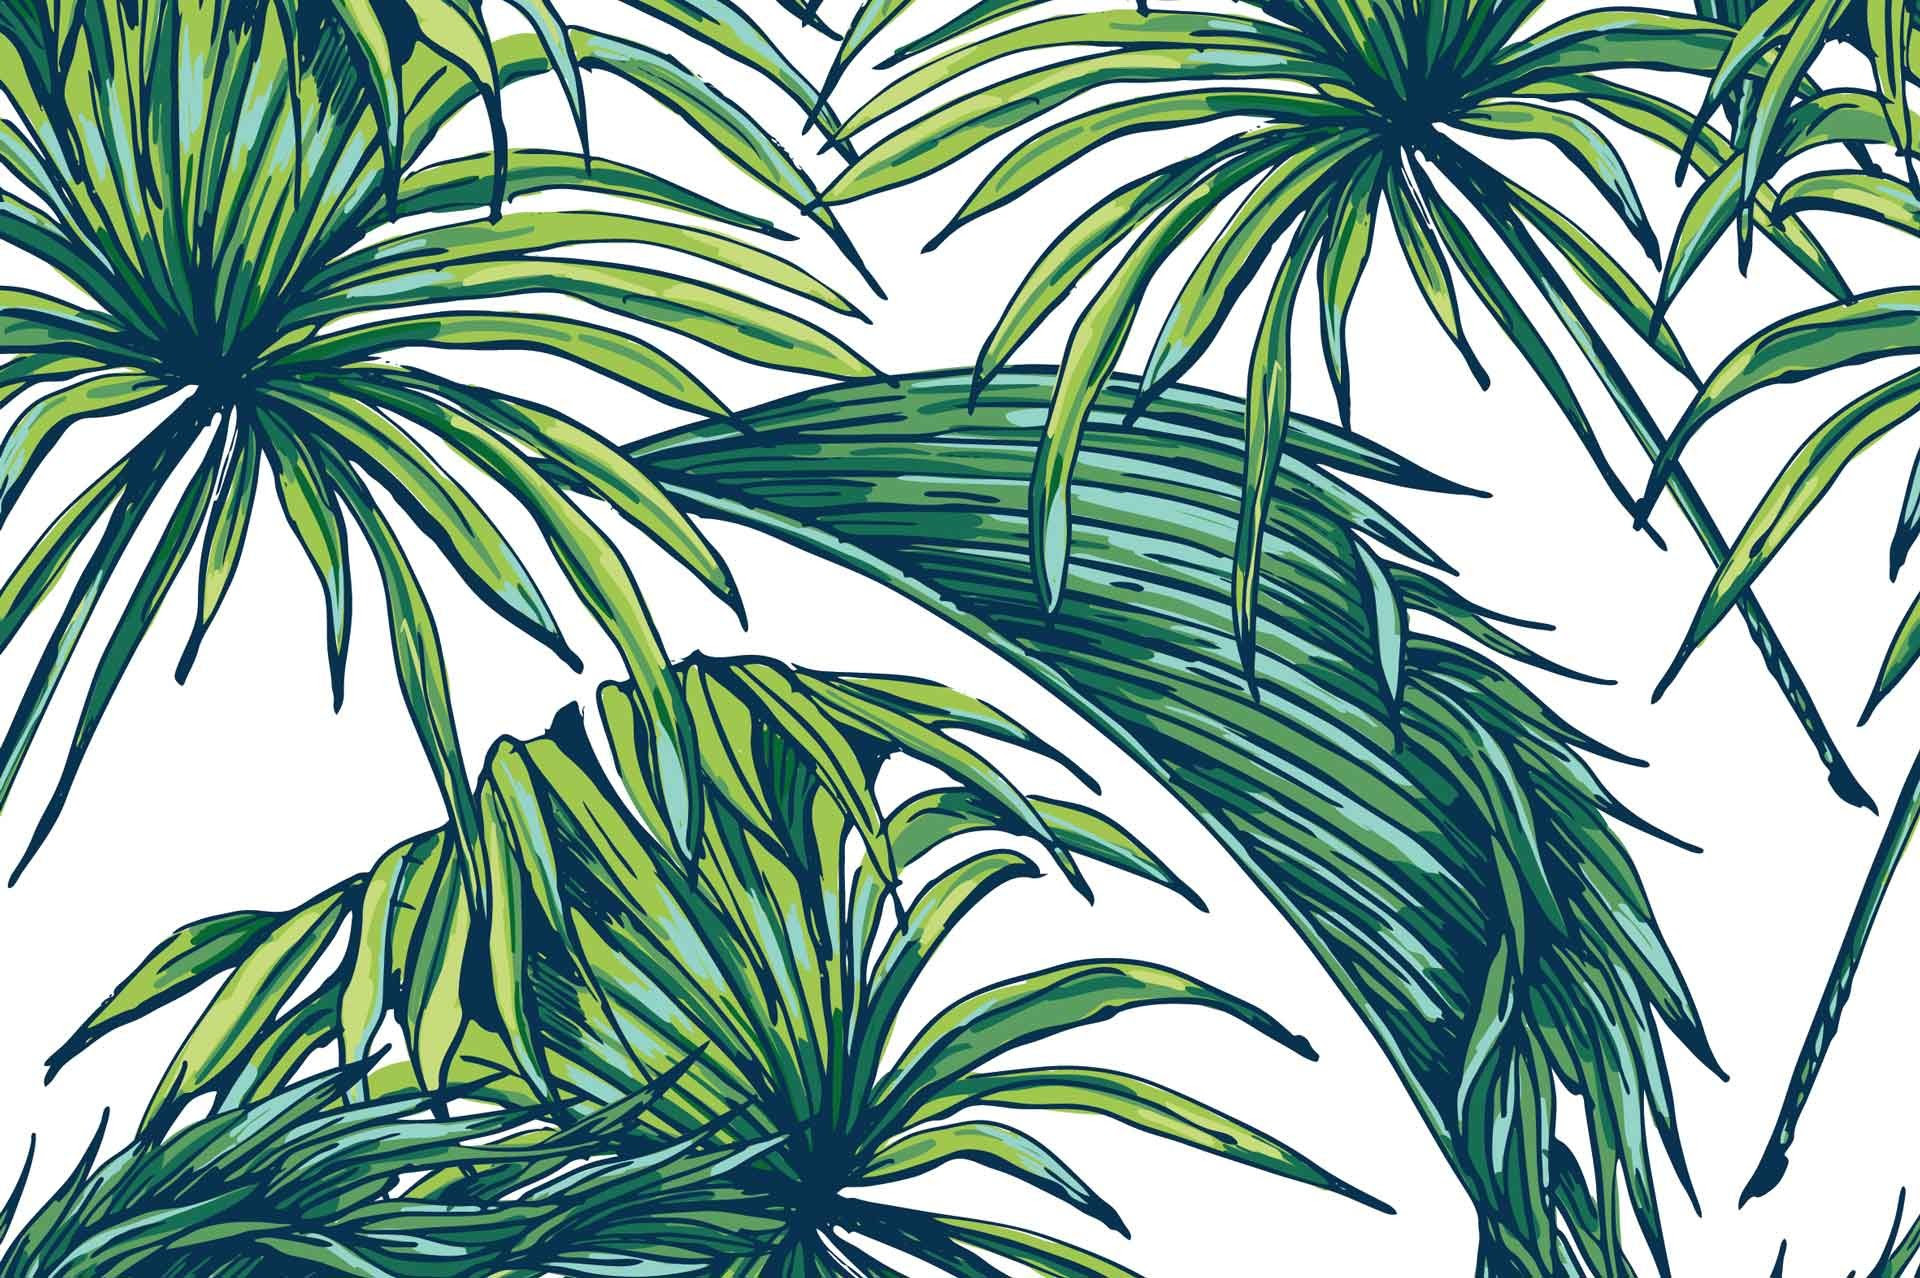 Palm Leaves Wallpaper (37+ images)